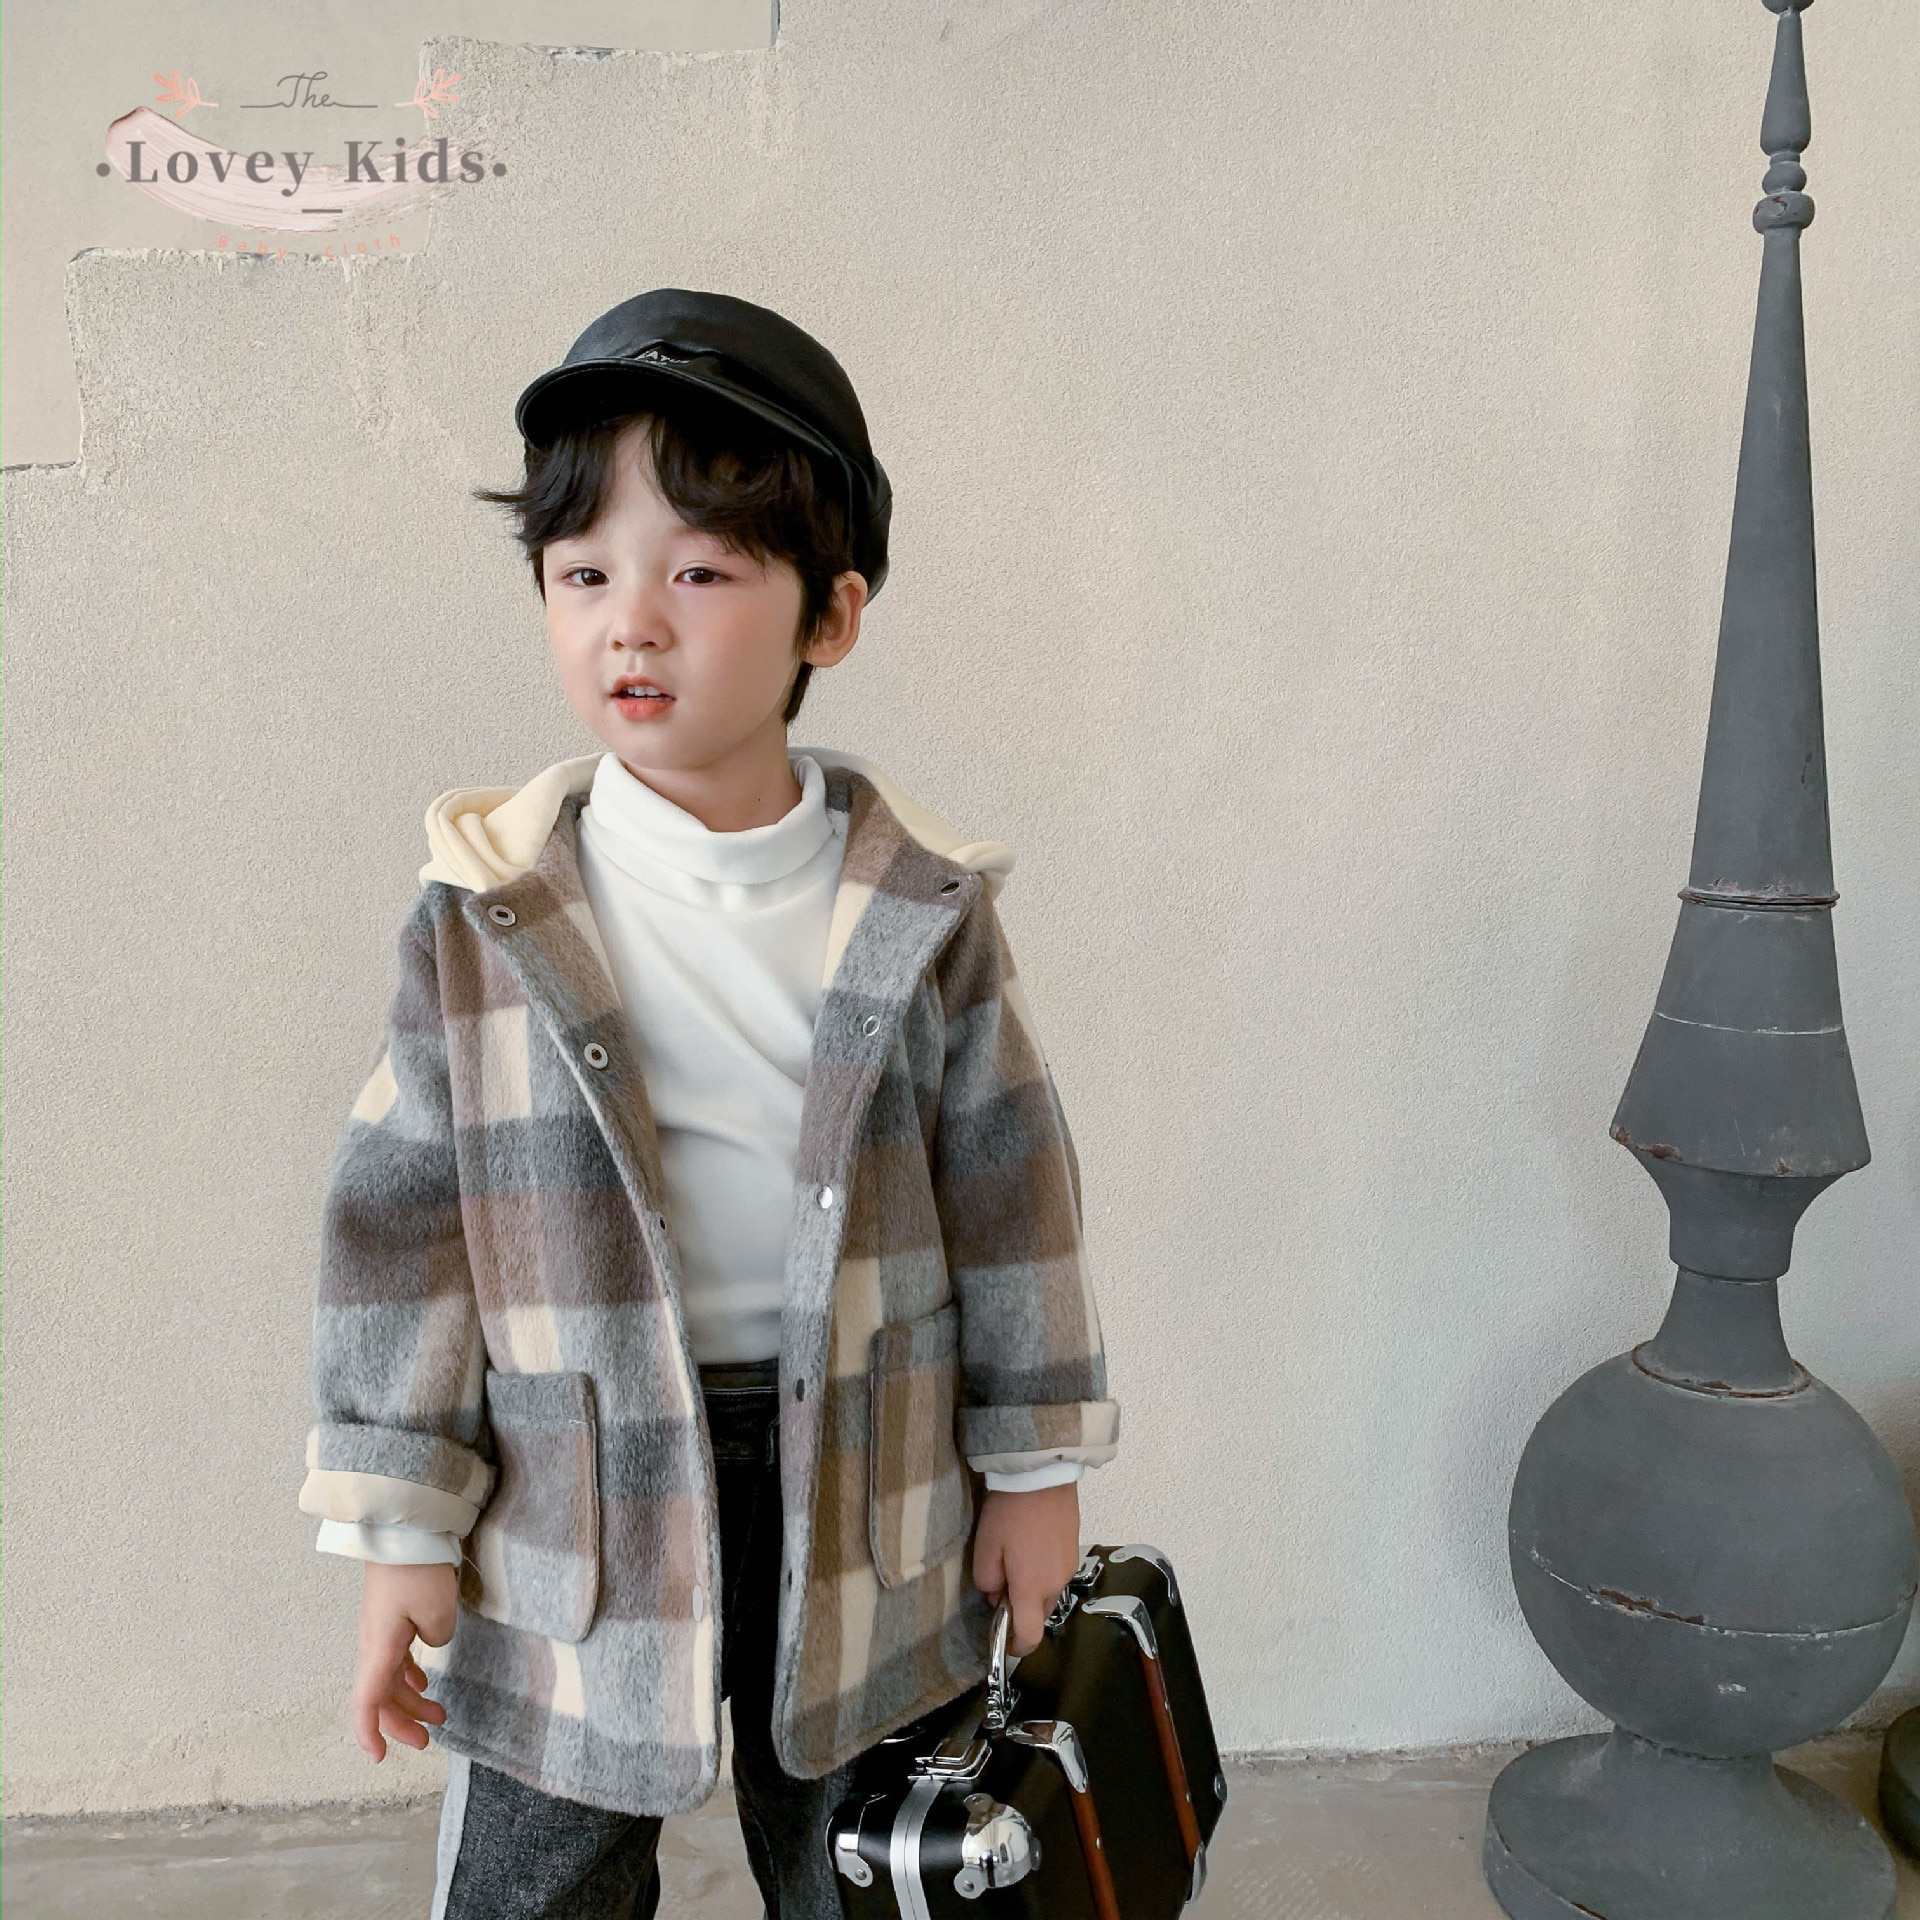 2020 Winter Warm Toddler Baby Boy Wool Coat Plaid Sample Korean Style Outerwear Fashion Hooded 1-6T